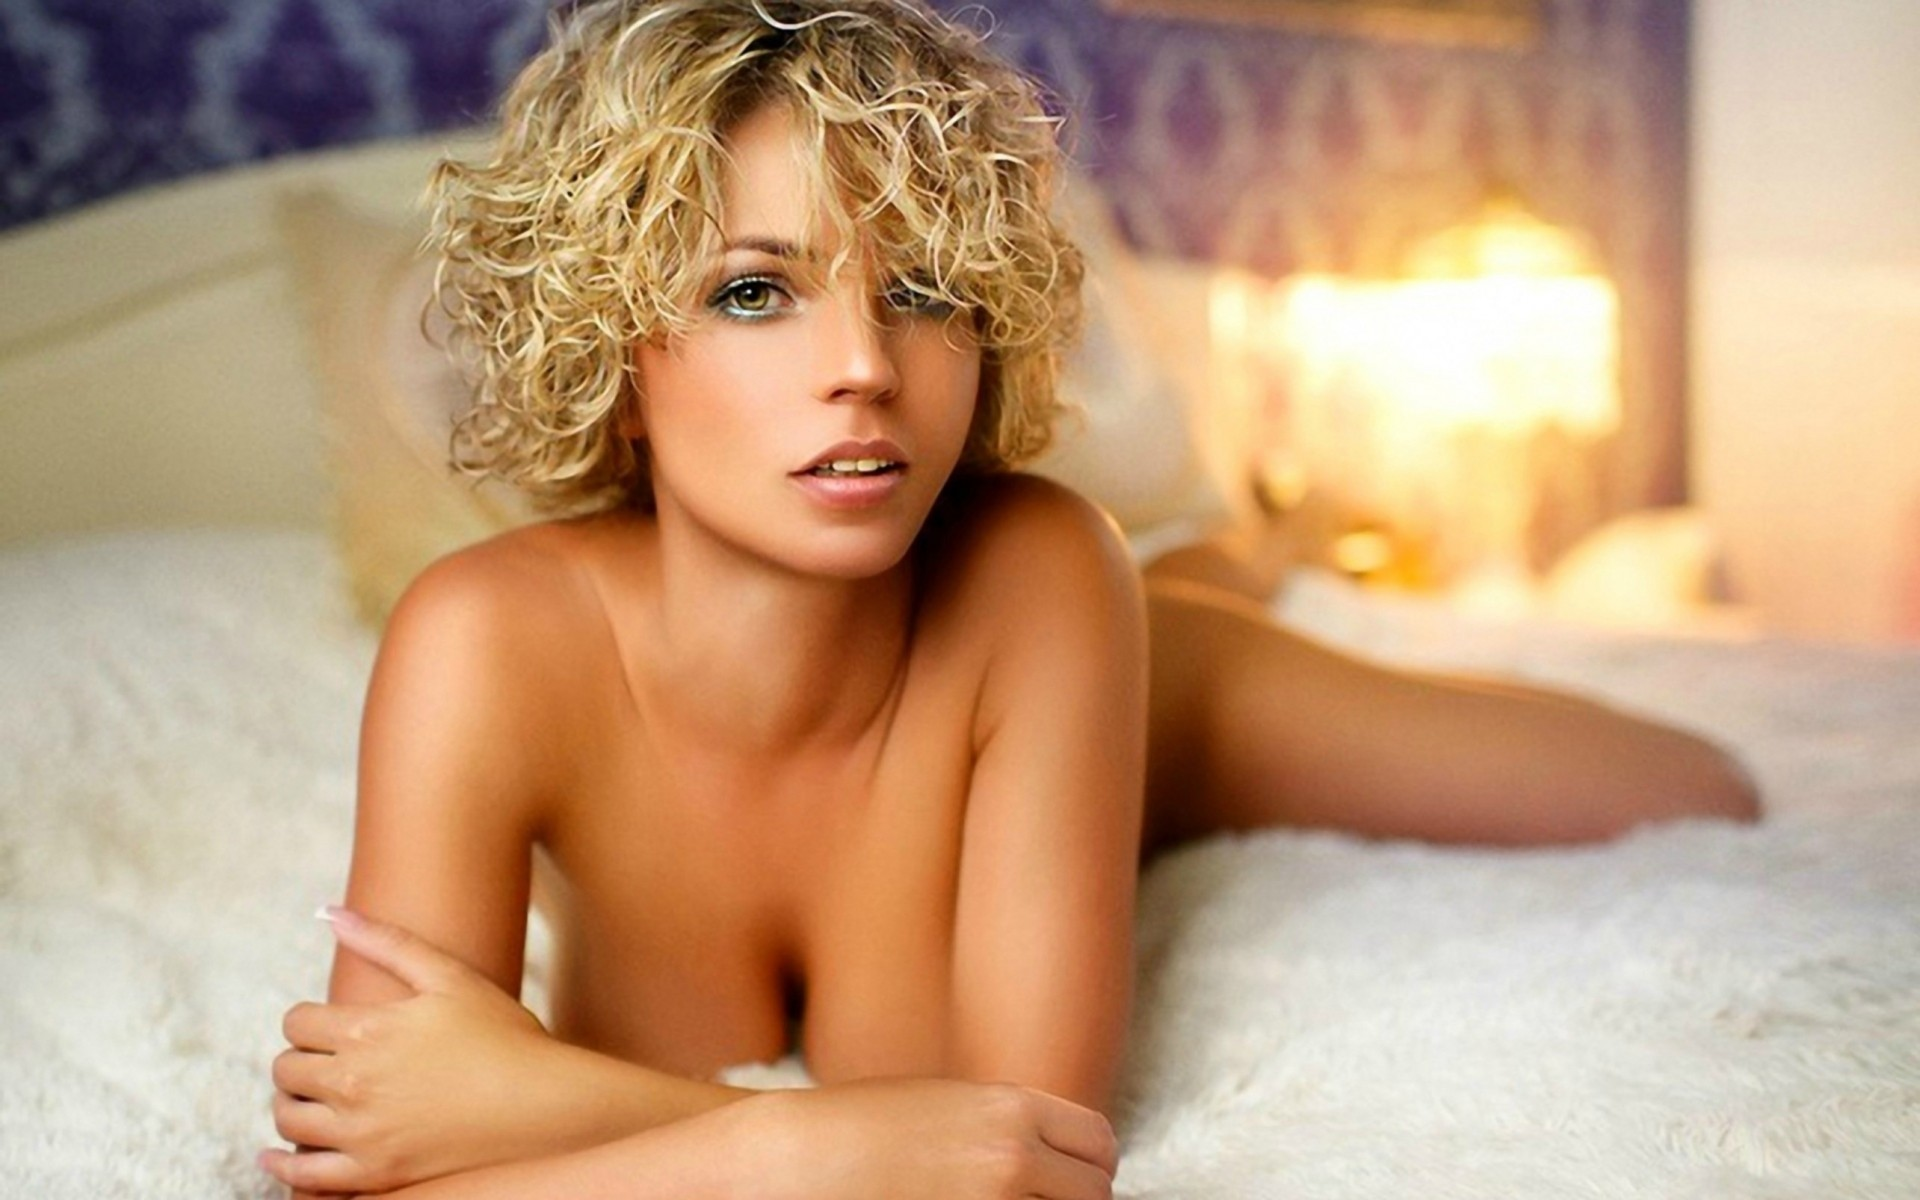 sexy-curly-hair-nudes-do-women-orgasm-more-from-anal